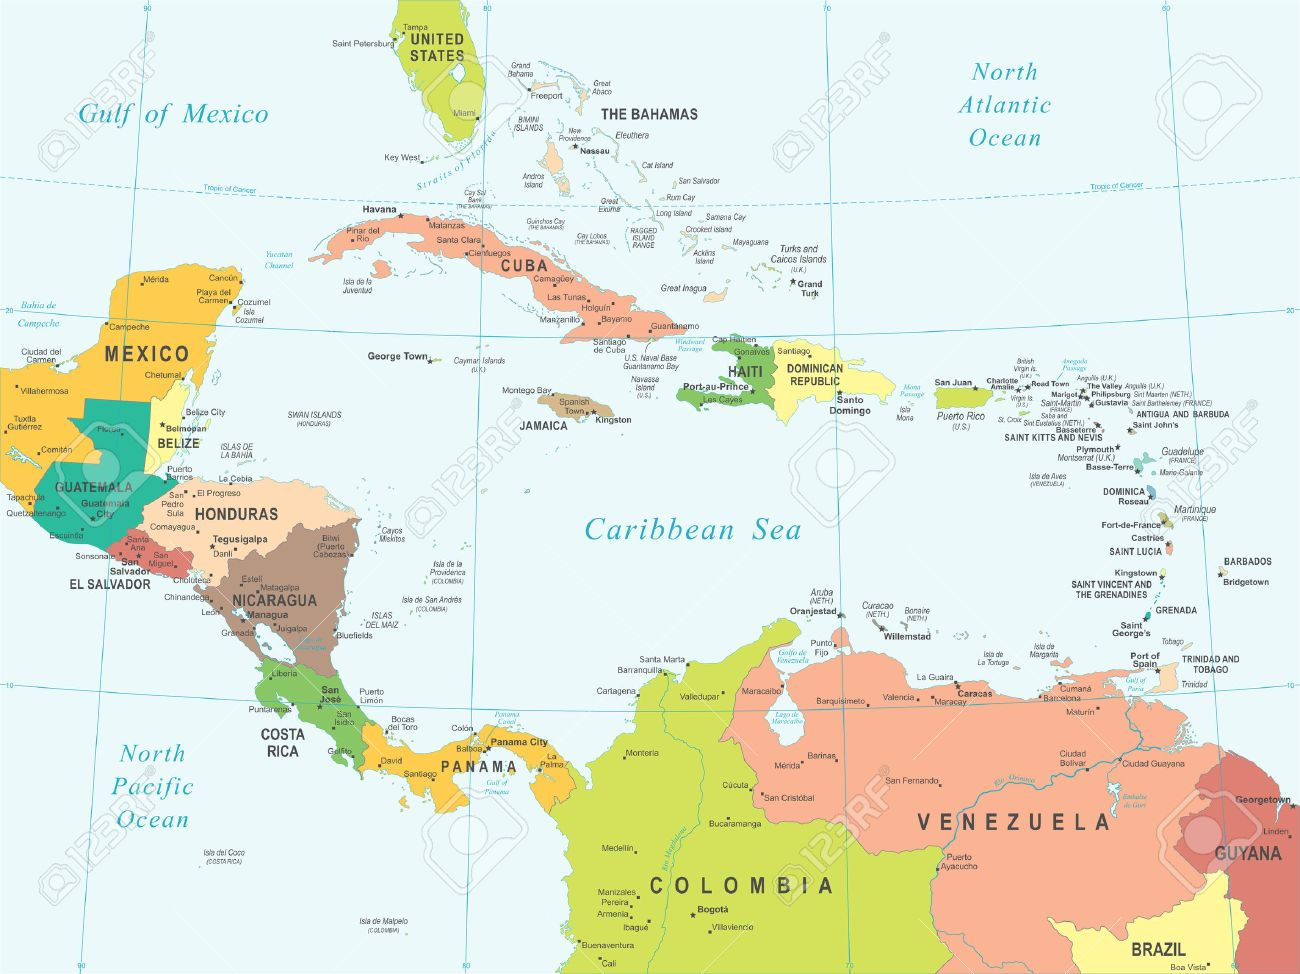 Panama Central America Stock Illustrations Cliparts And - Panama central america map